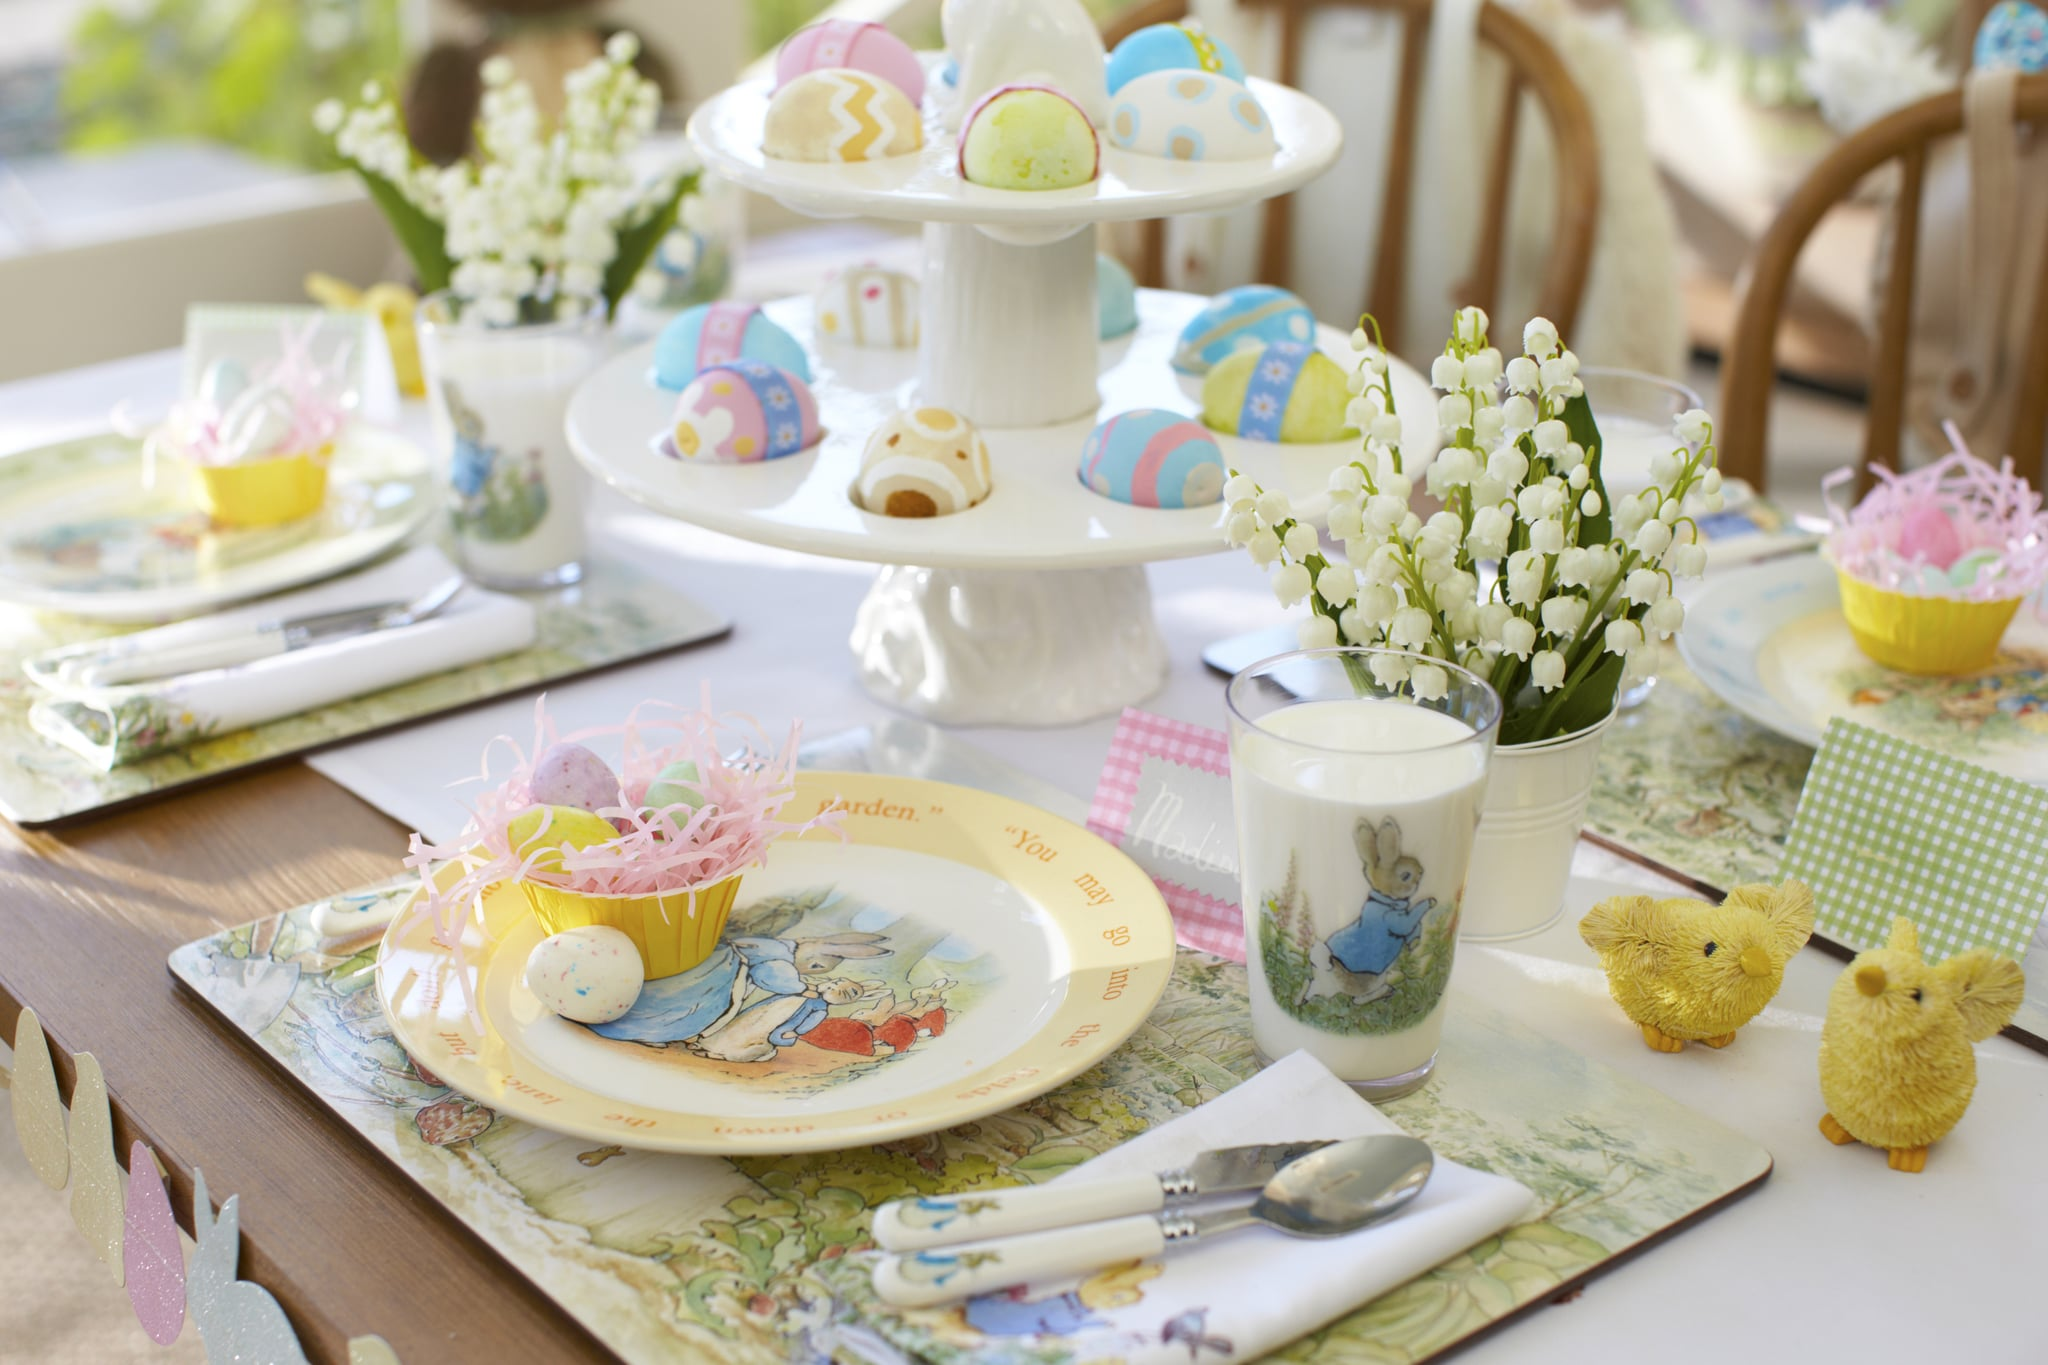 We're having a bit of a love affair around here with Peter Rabbit. Beatrix Potter's beloved bunny is having a renaissance with a new collection at BabyGap and now an Easter table setting at Pottery Barn Kids. These Peter Rabbit Plates ($12 each) are ideal for your upcoming Easter celebrations and throughout the year.